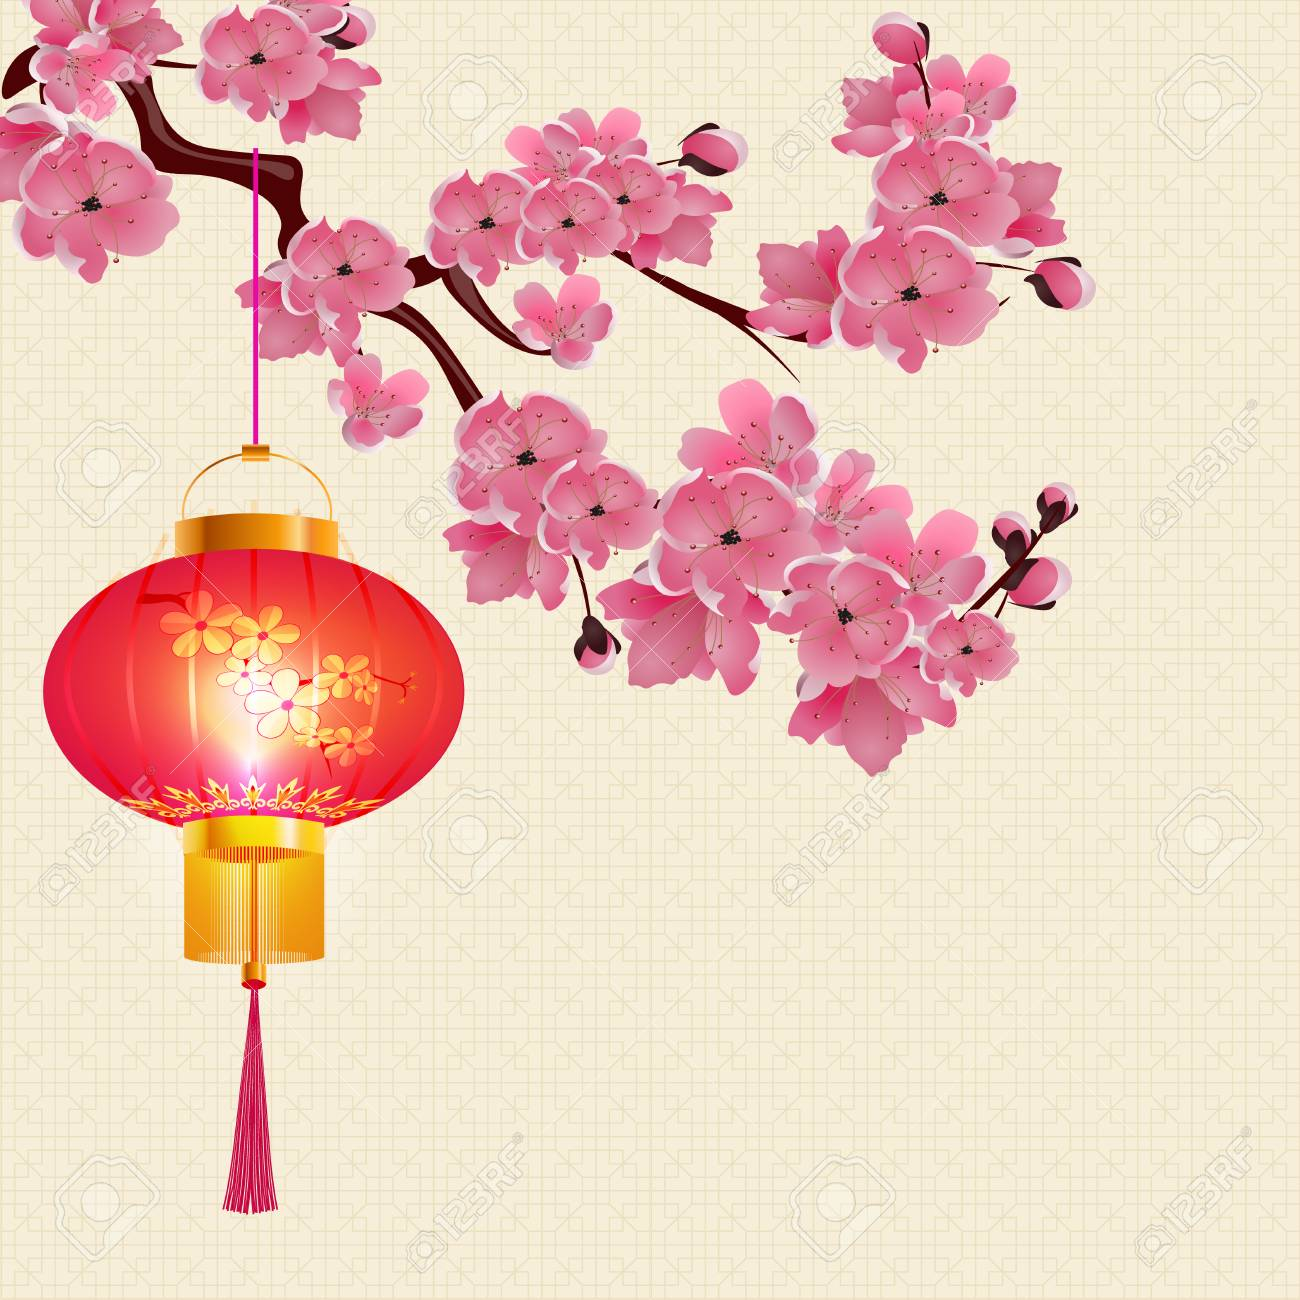 red chinese lanterns hanging on a branch of cherry blossoms with